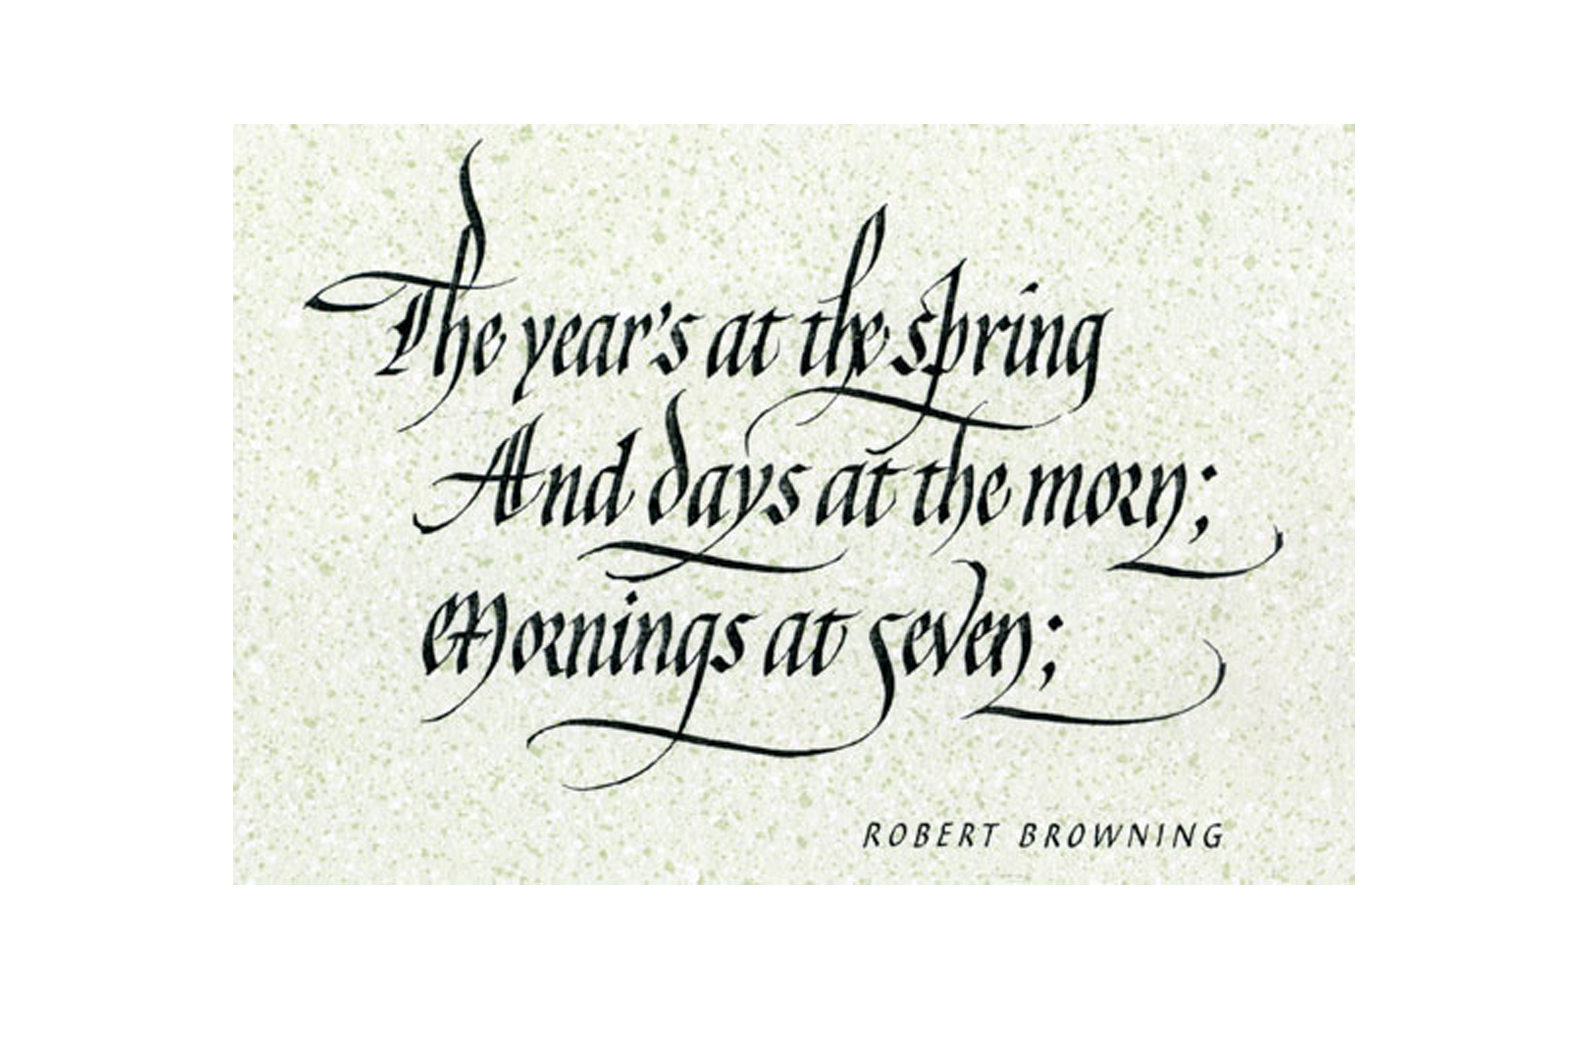 Robert Browning's word